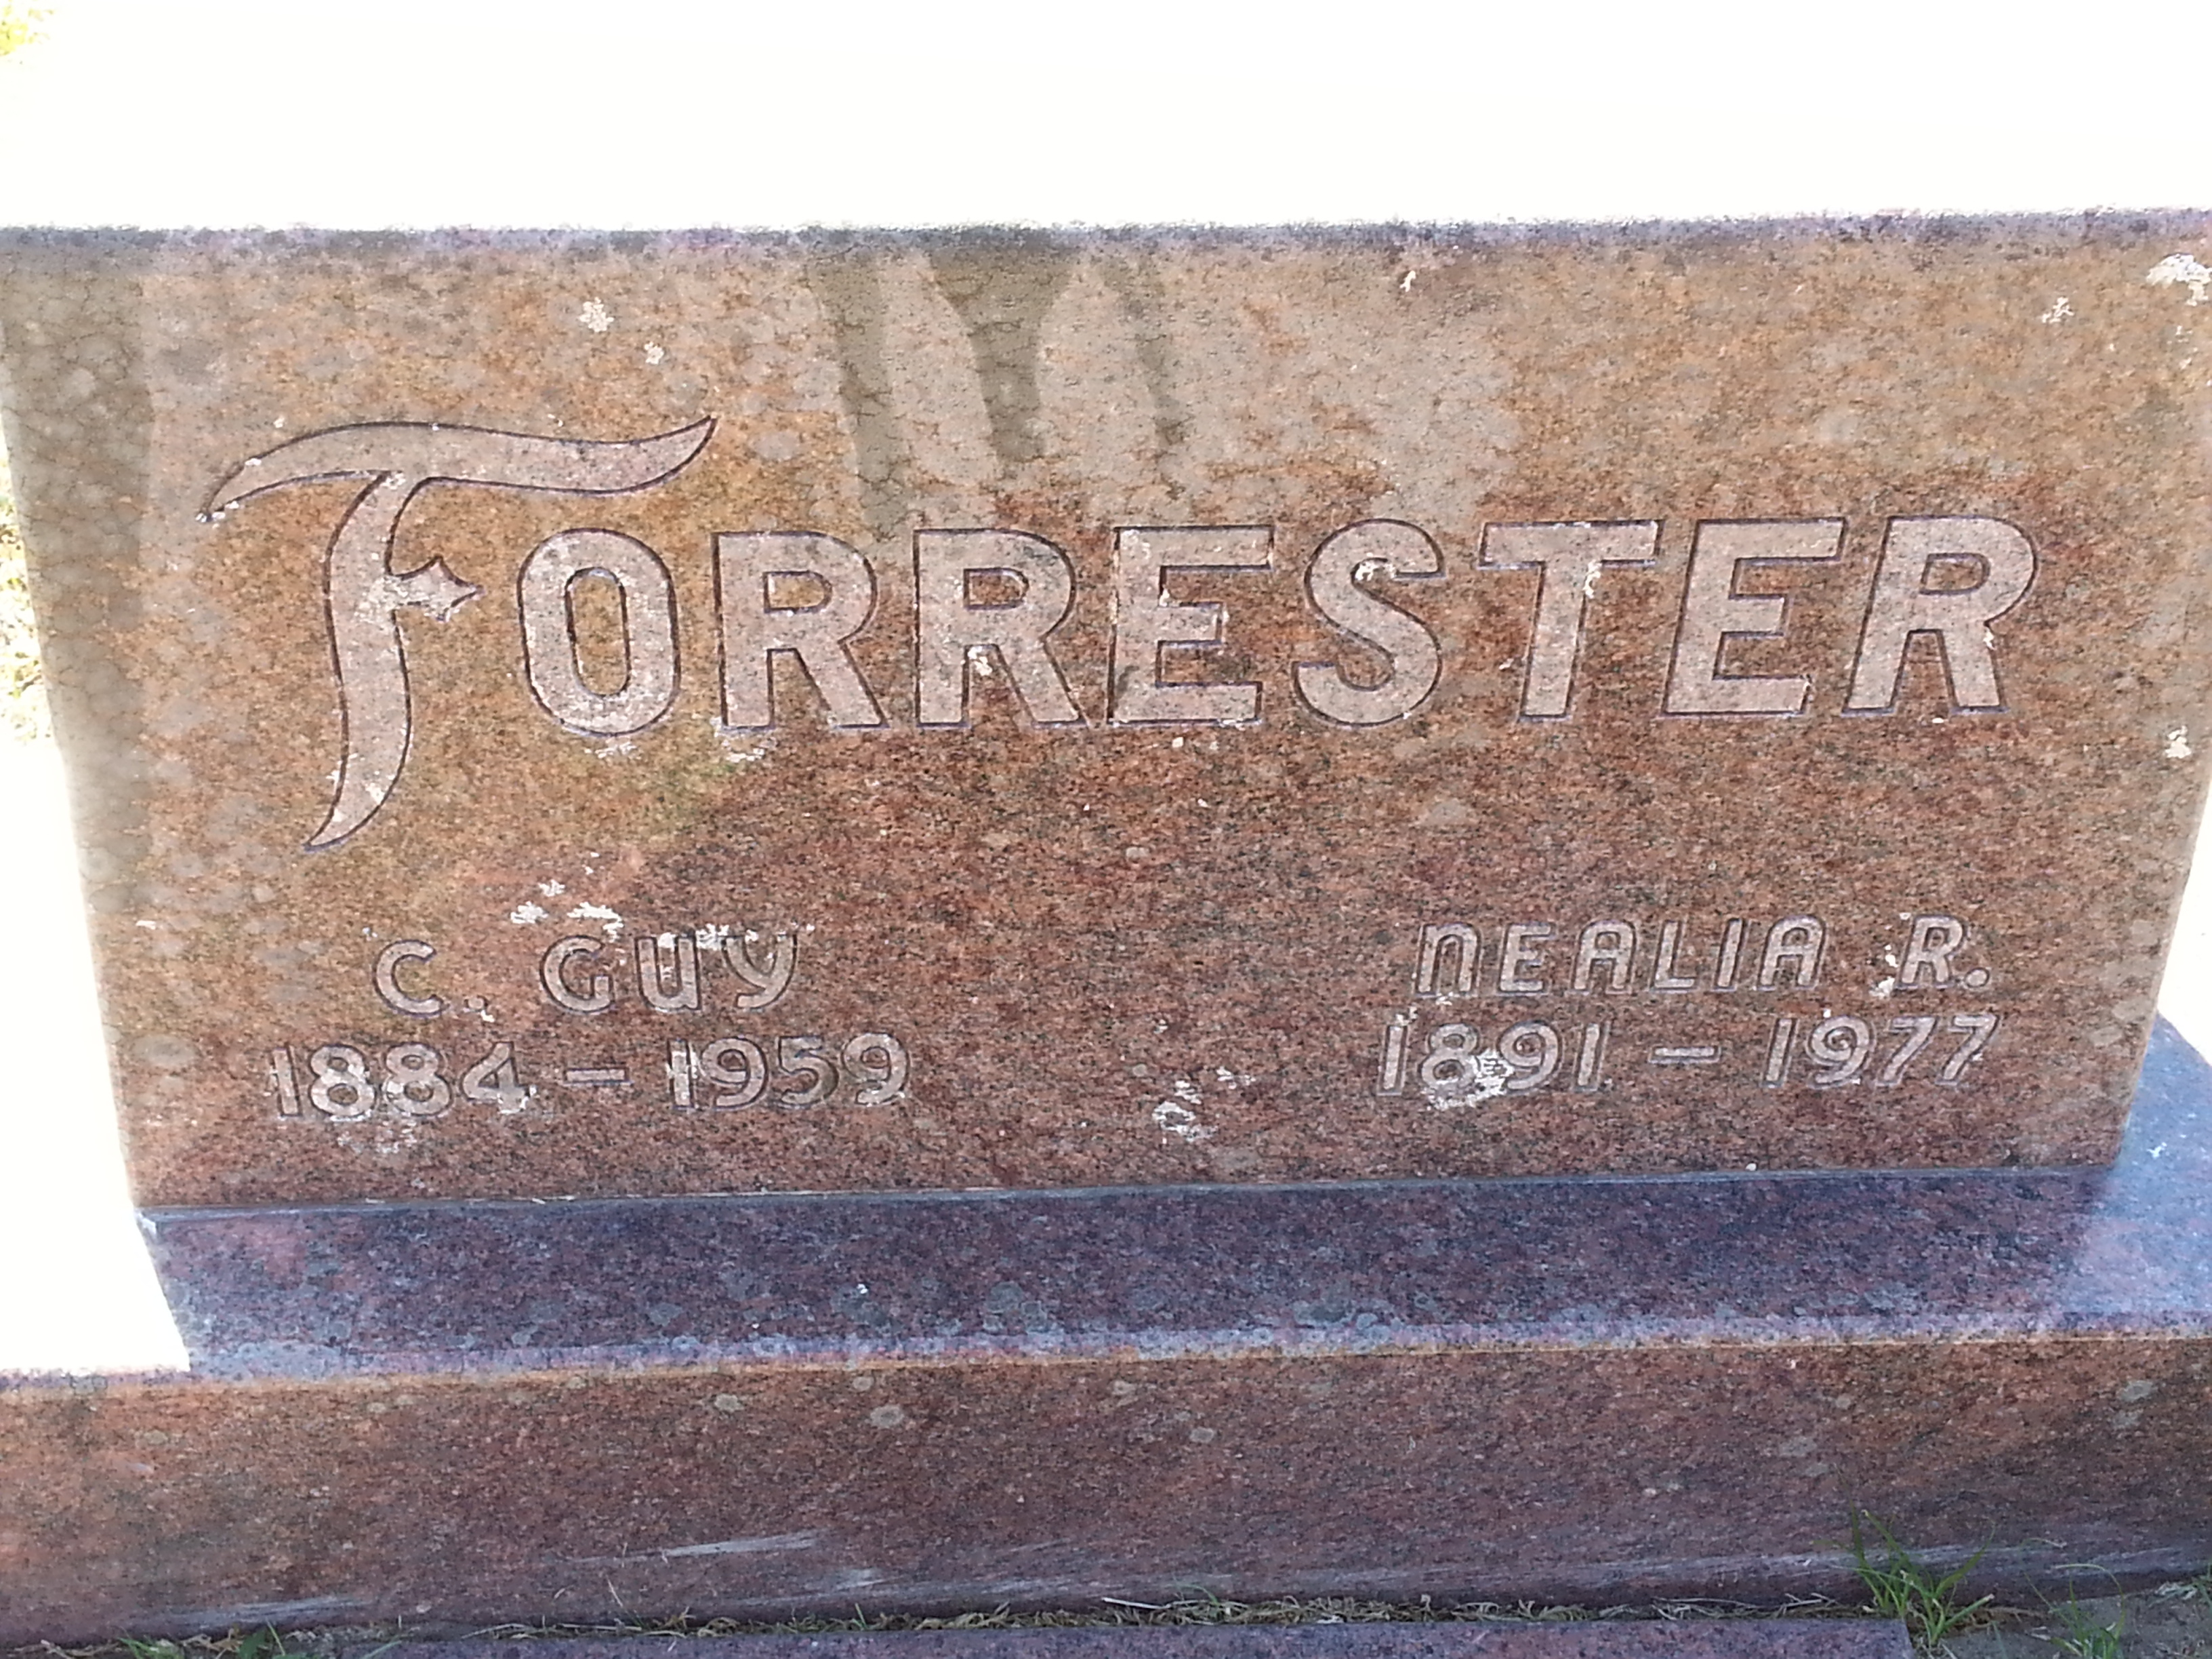 Clayborn guy forrester 1884 1959 find a grave memorial